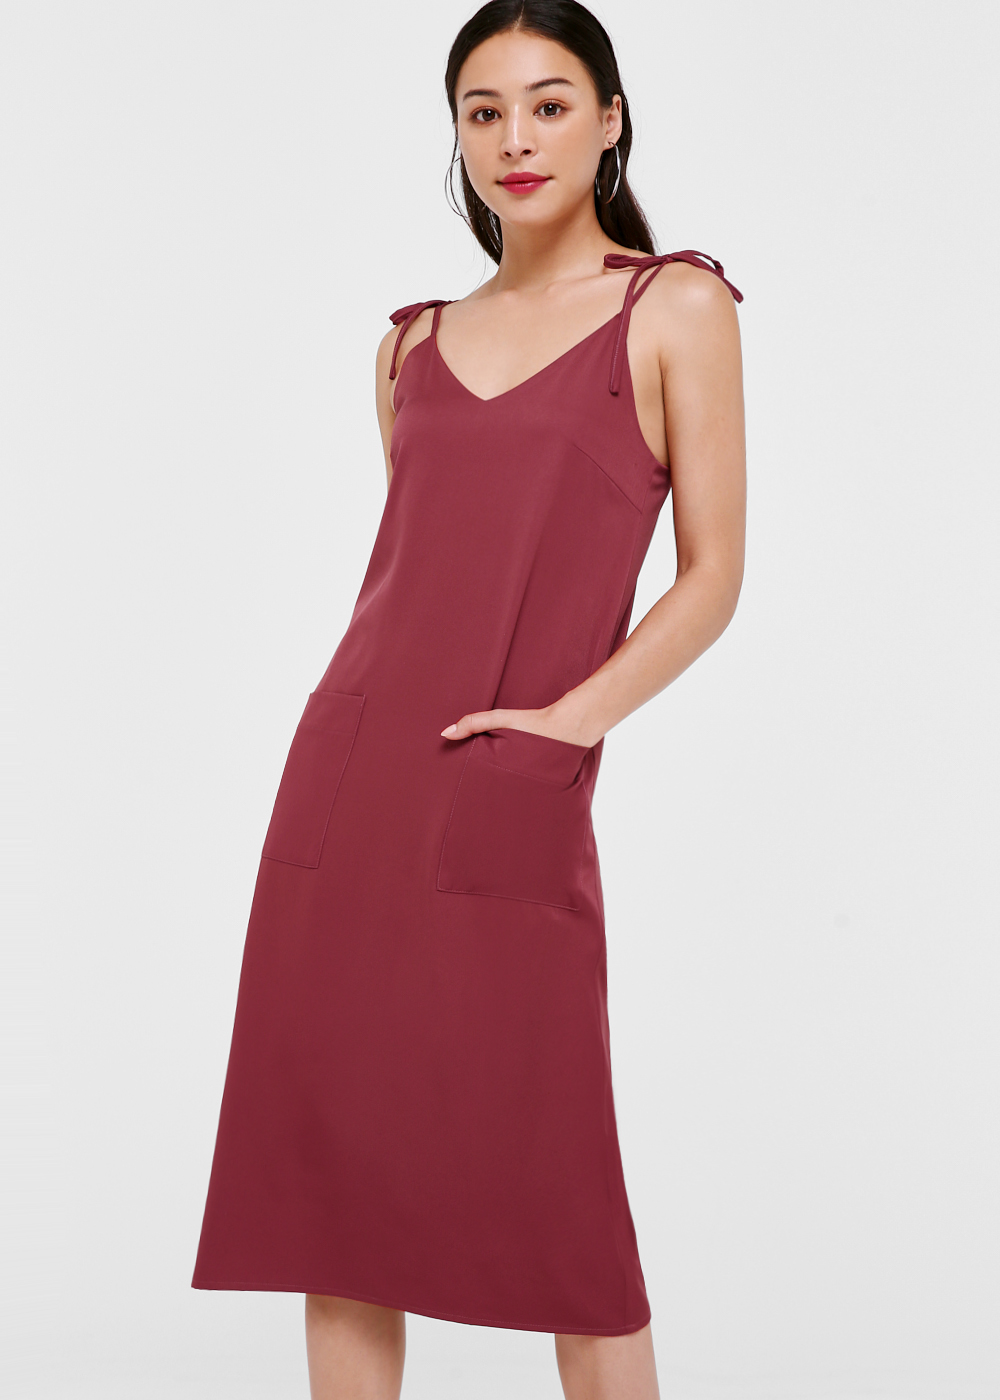 Whitney Ribbon Tie Camisole Dress